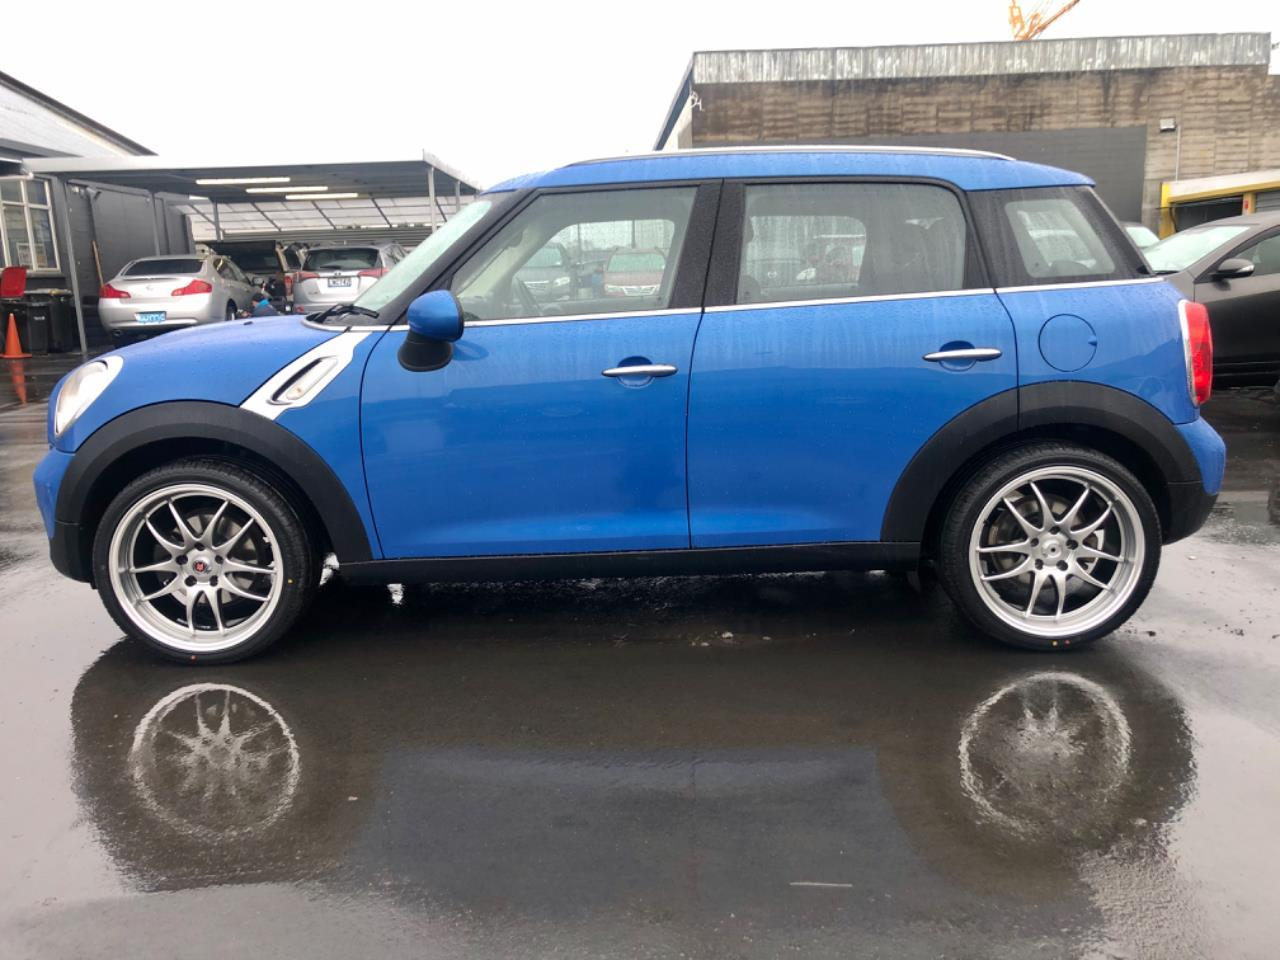 image-5, 2013 Mini Countryman Crossover at Christchurch